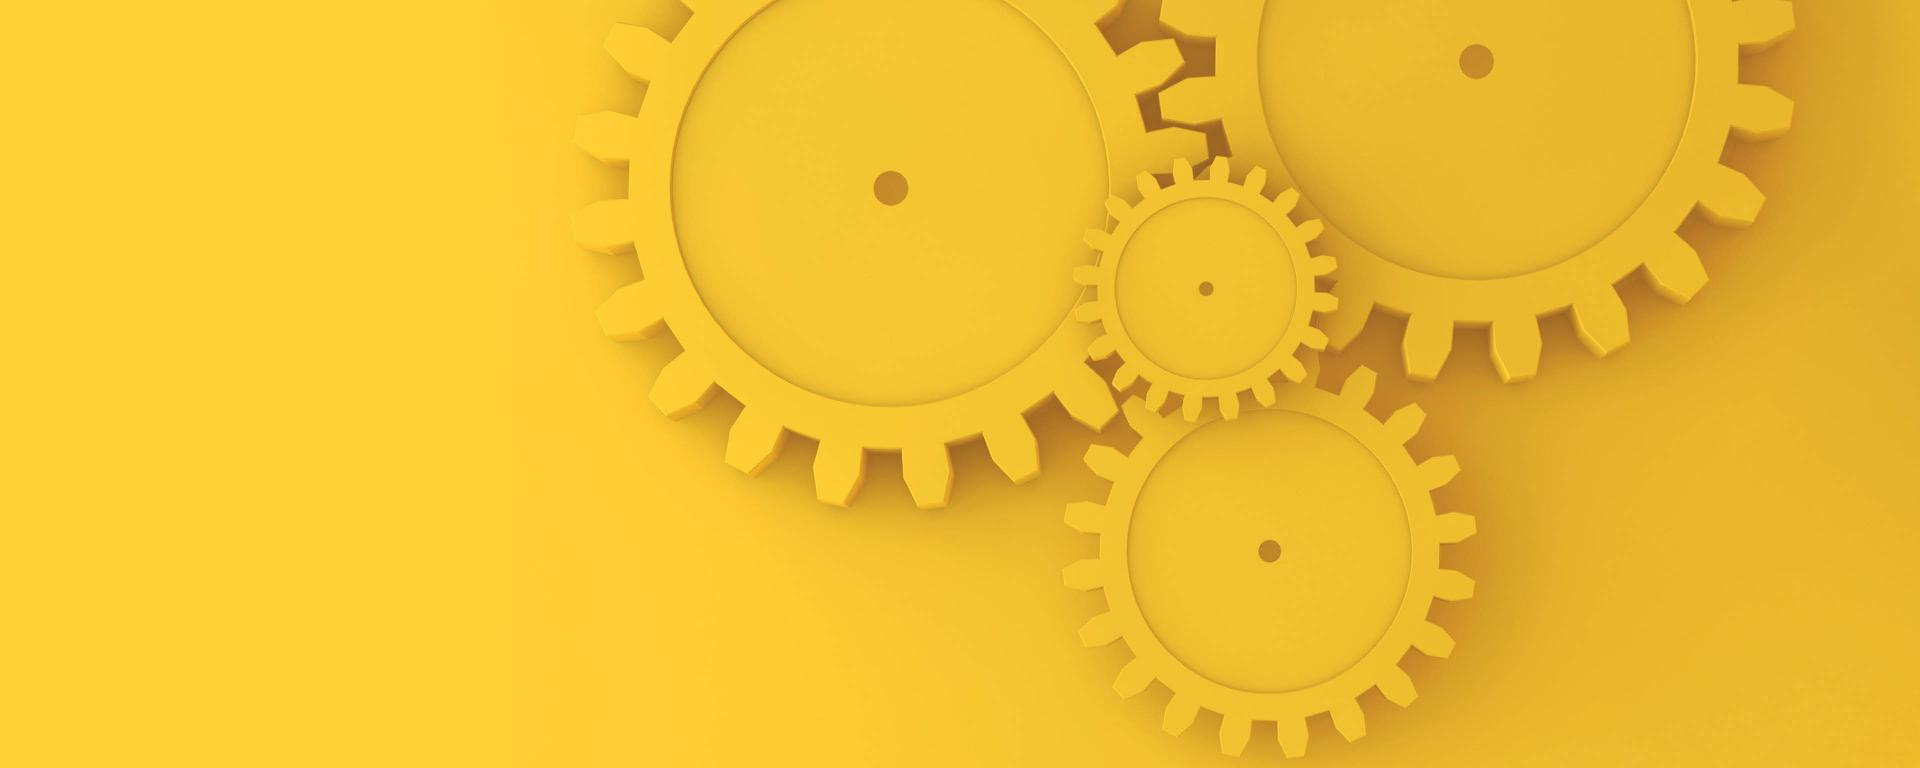 wheels in different sizes in a yellow color on a yellow background